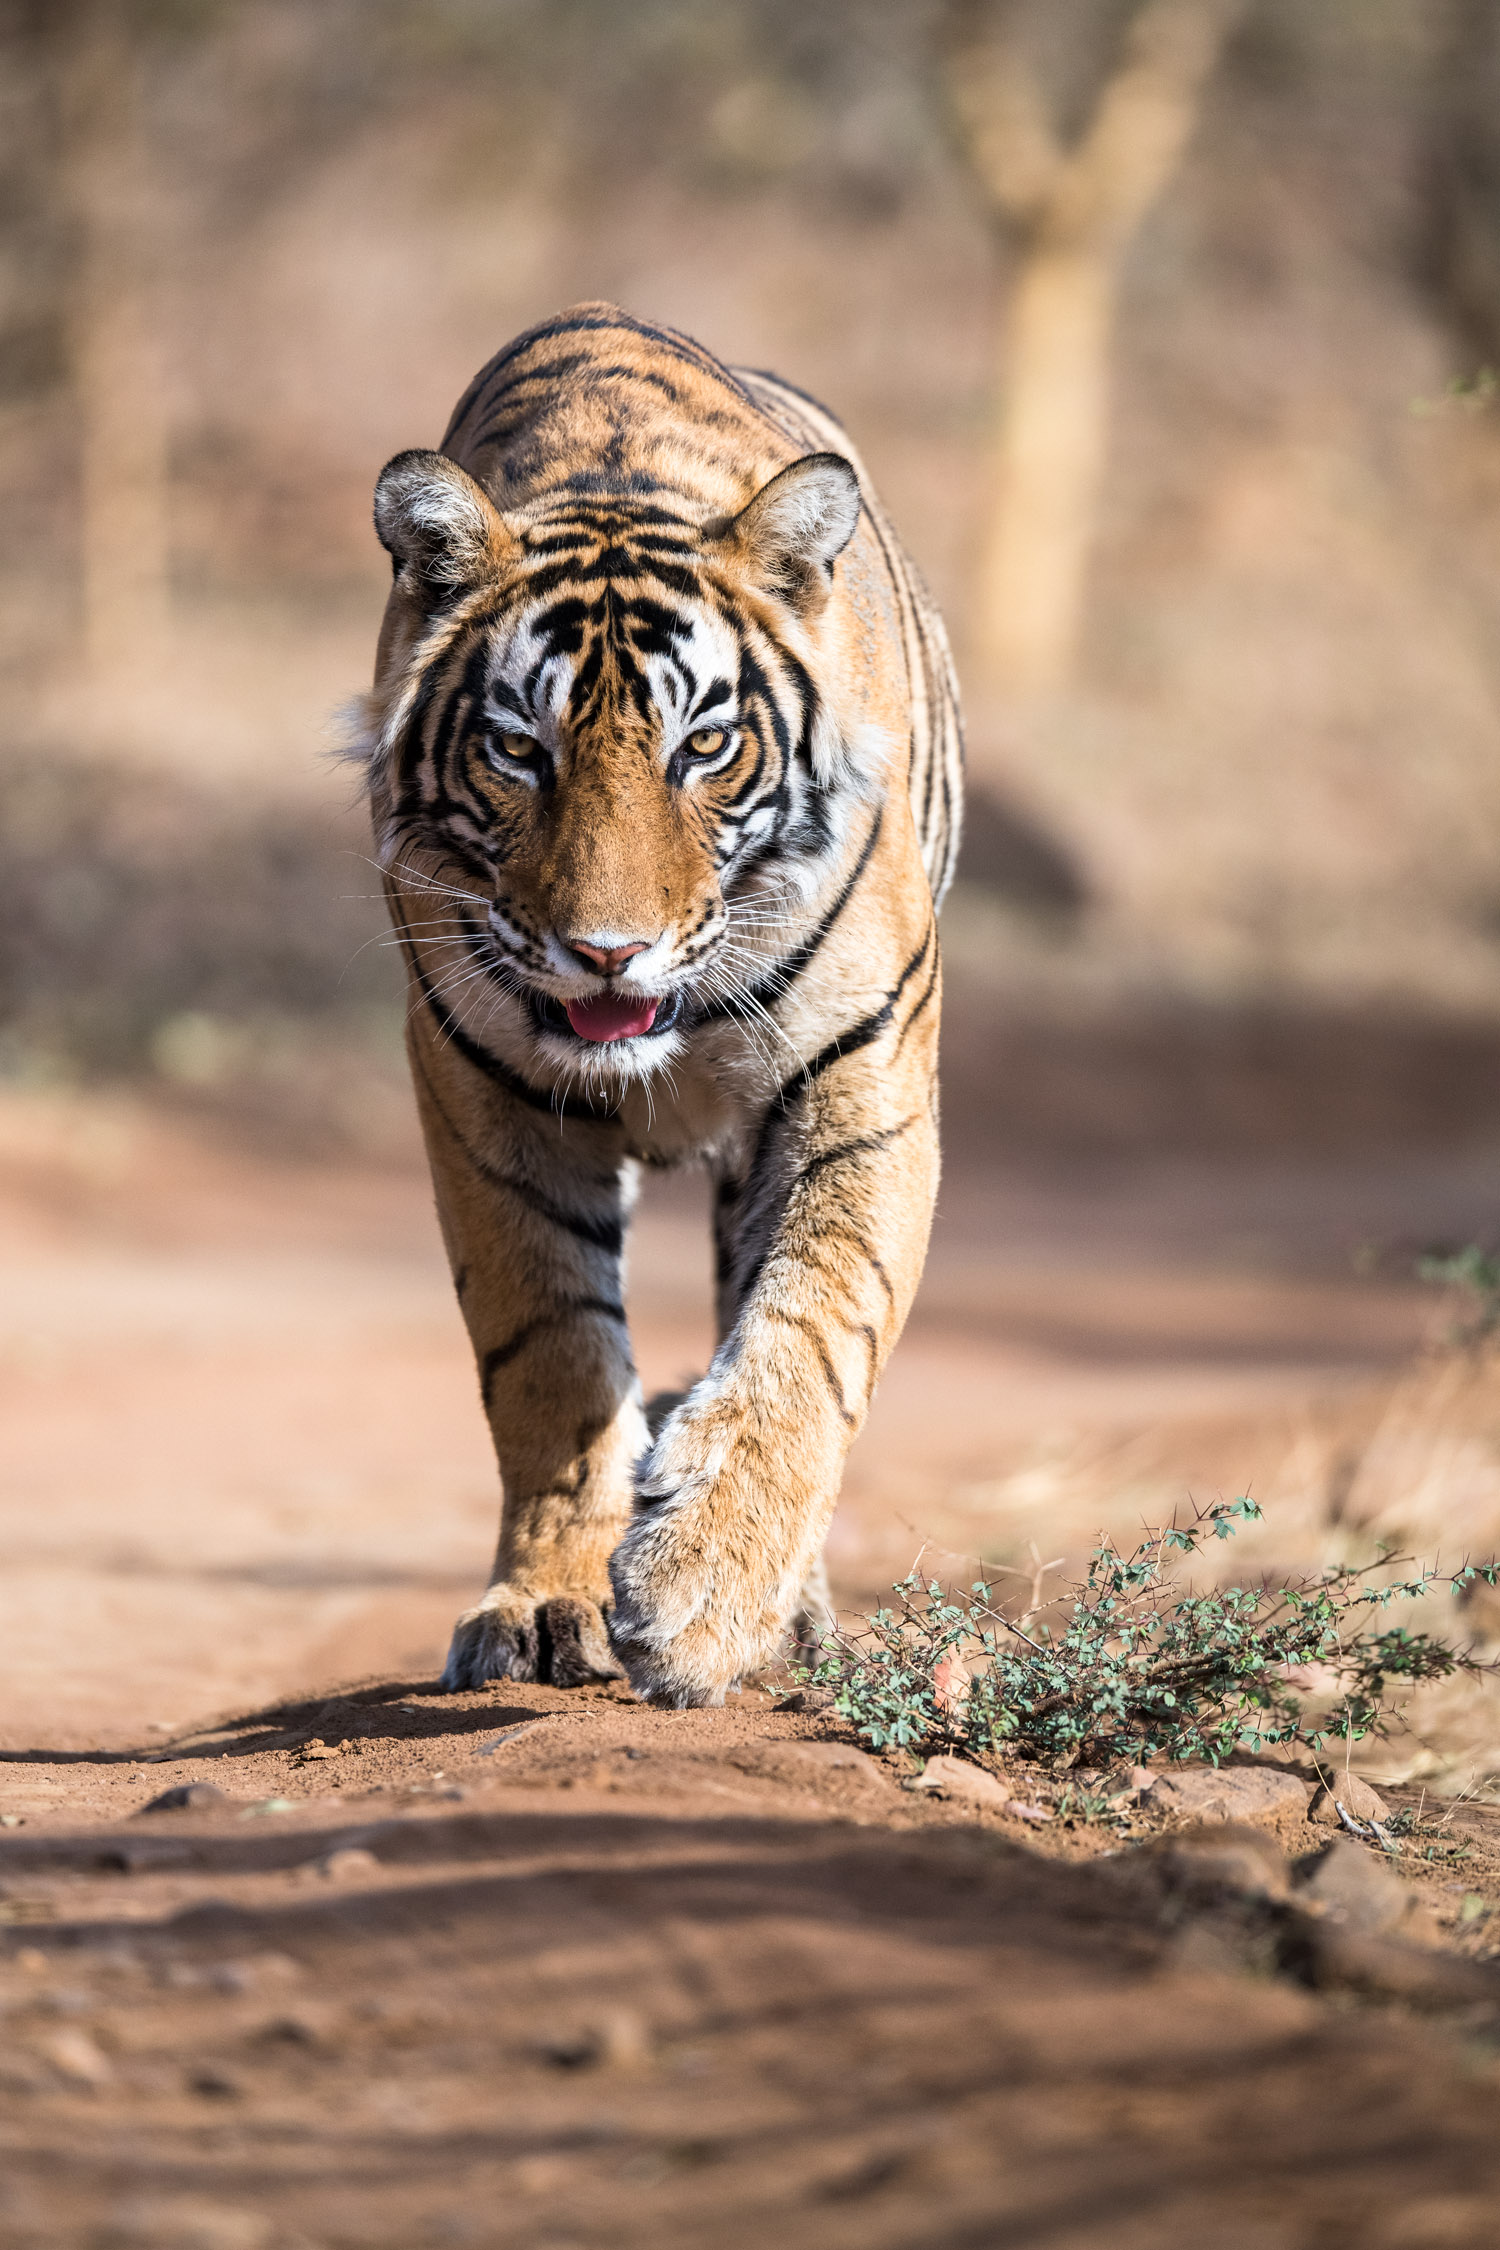 Bengal tiger approaching along forest track, Ranthambhore National Park, Rajasthan, India